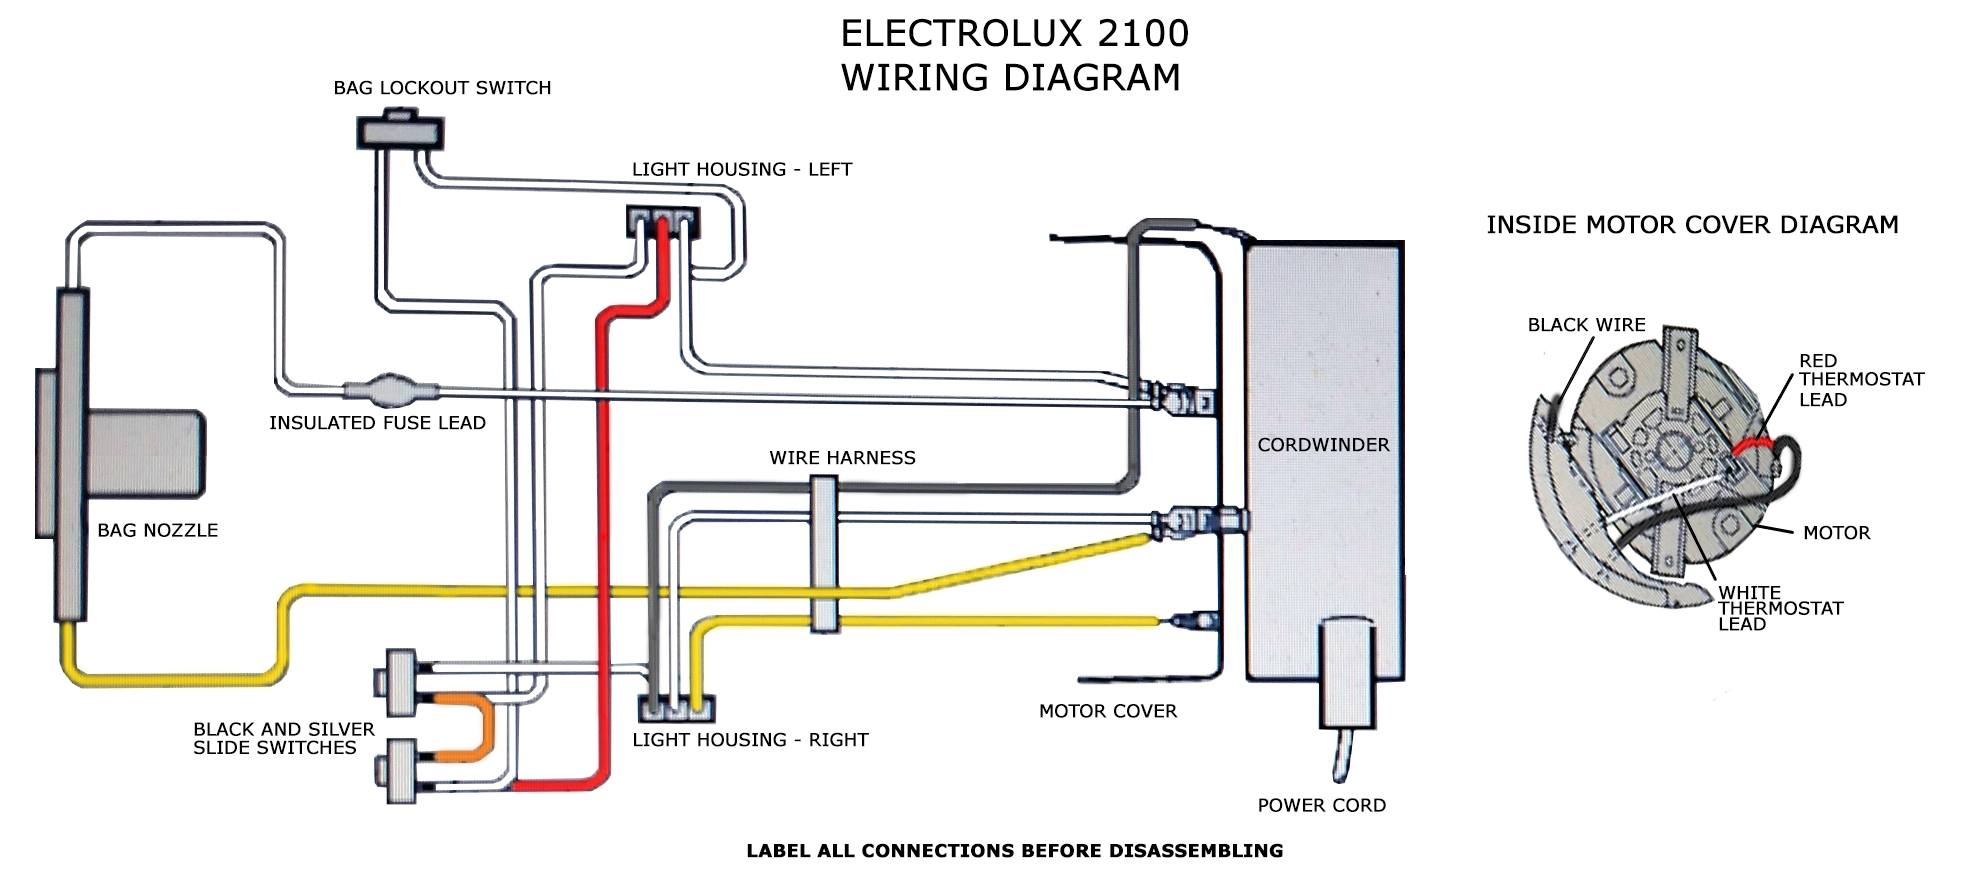 2100 wiring diagram kirby shampooer diagram bosch carpet shampooers \u2022 wiring diagram  at honlapkeszites.co